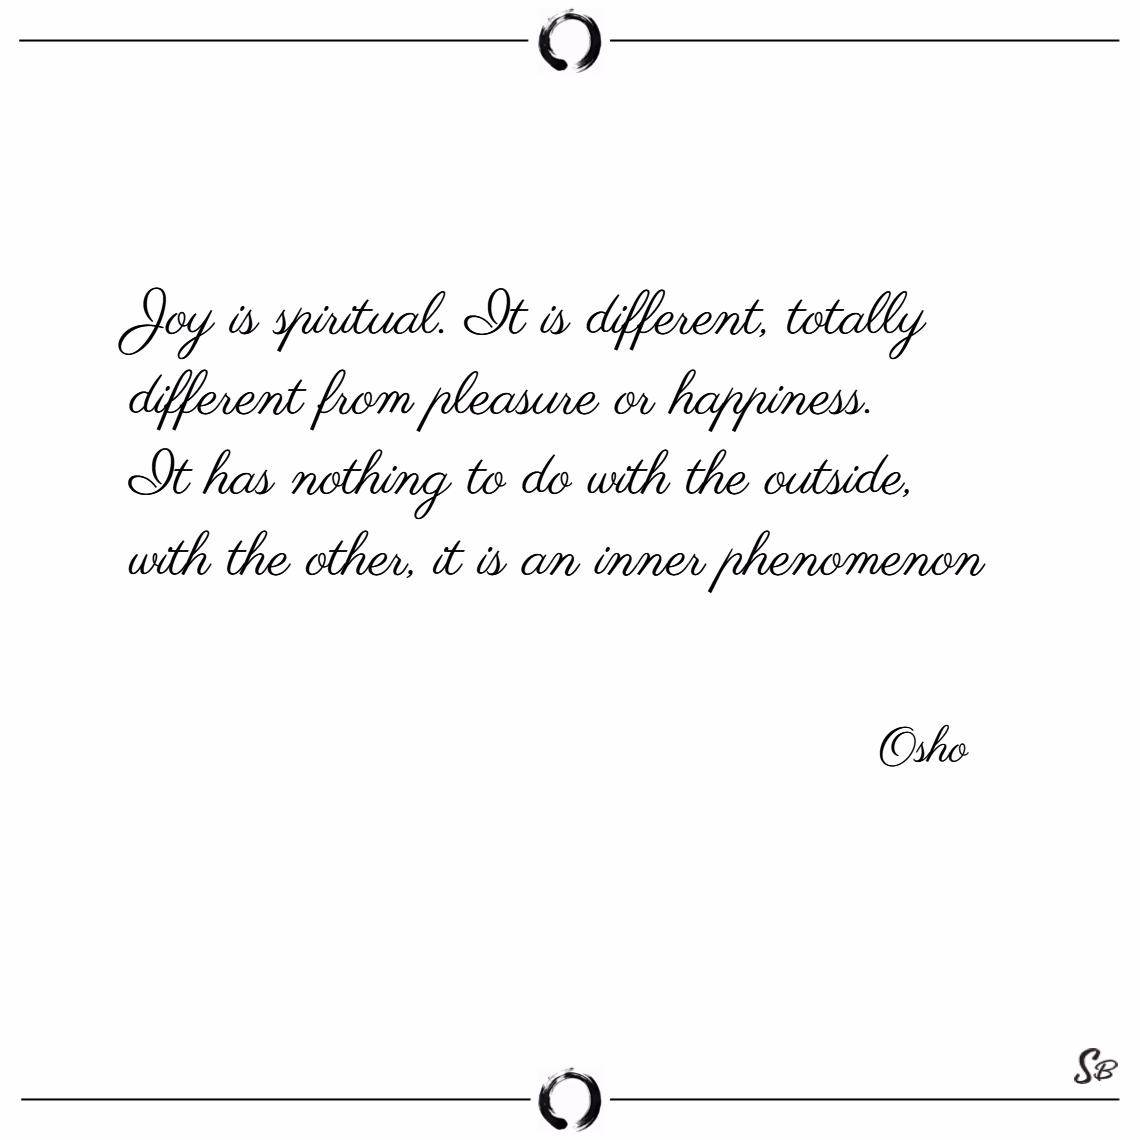 Joy is spiritual. it is different, totally differe